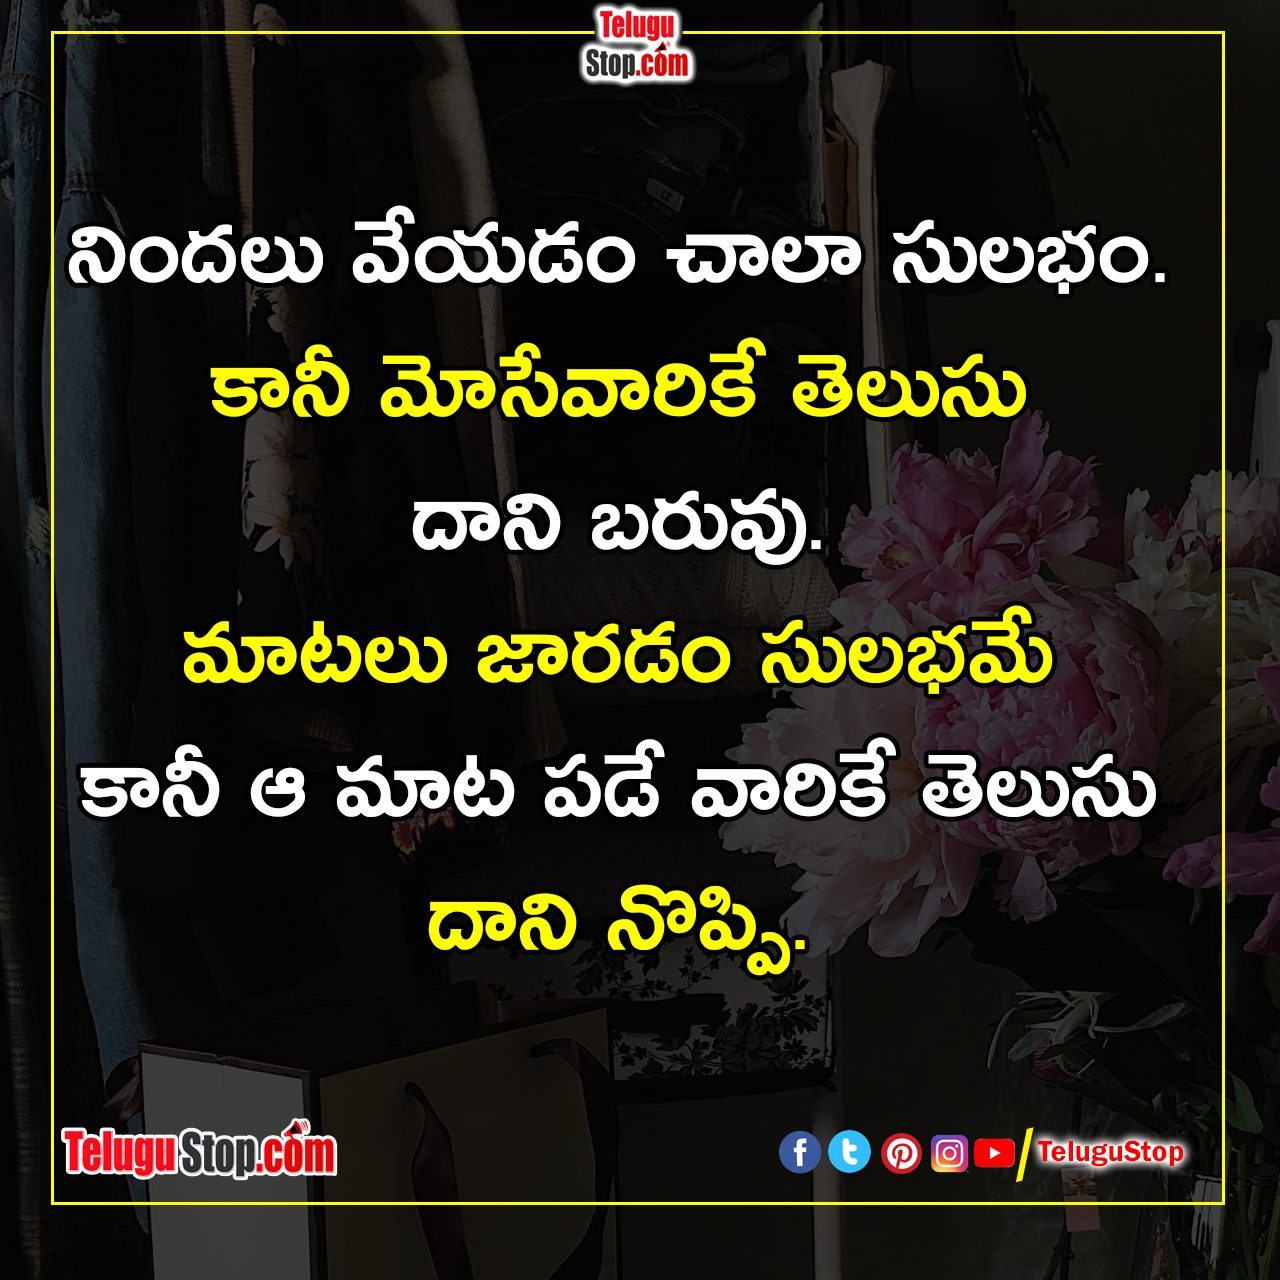 Telugu Dont Forget Those Who Helped Inspirational Quotes, Everything Is In Love Inspirational Quotes, It Is Very Difficult To Speak Inspirational Quotes, Should Not Be The Cause Of One\\'s Suffering Inspirational Quotes-Telugu Daily Quotes - Inspirational/Motivational/Love/Friendship/Good Morning Quote